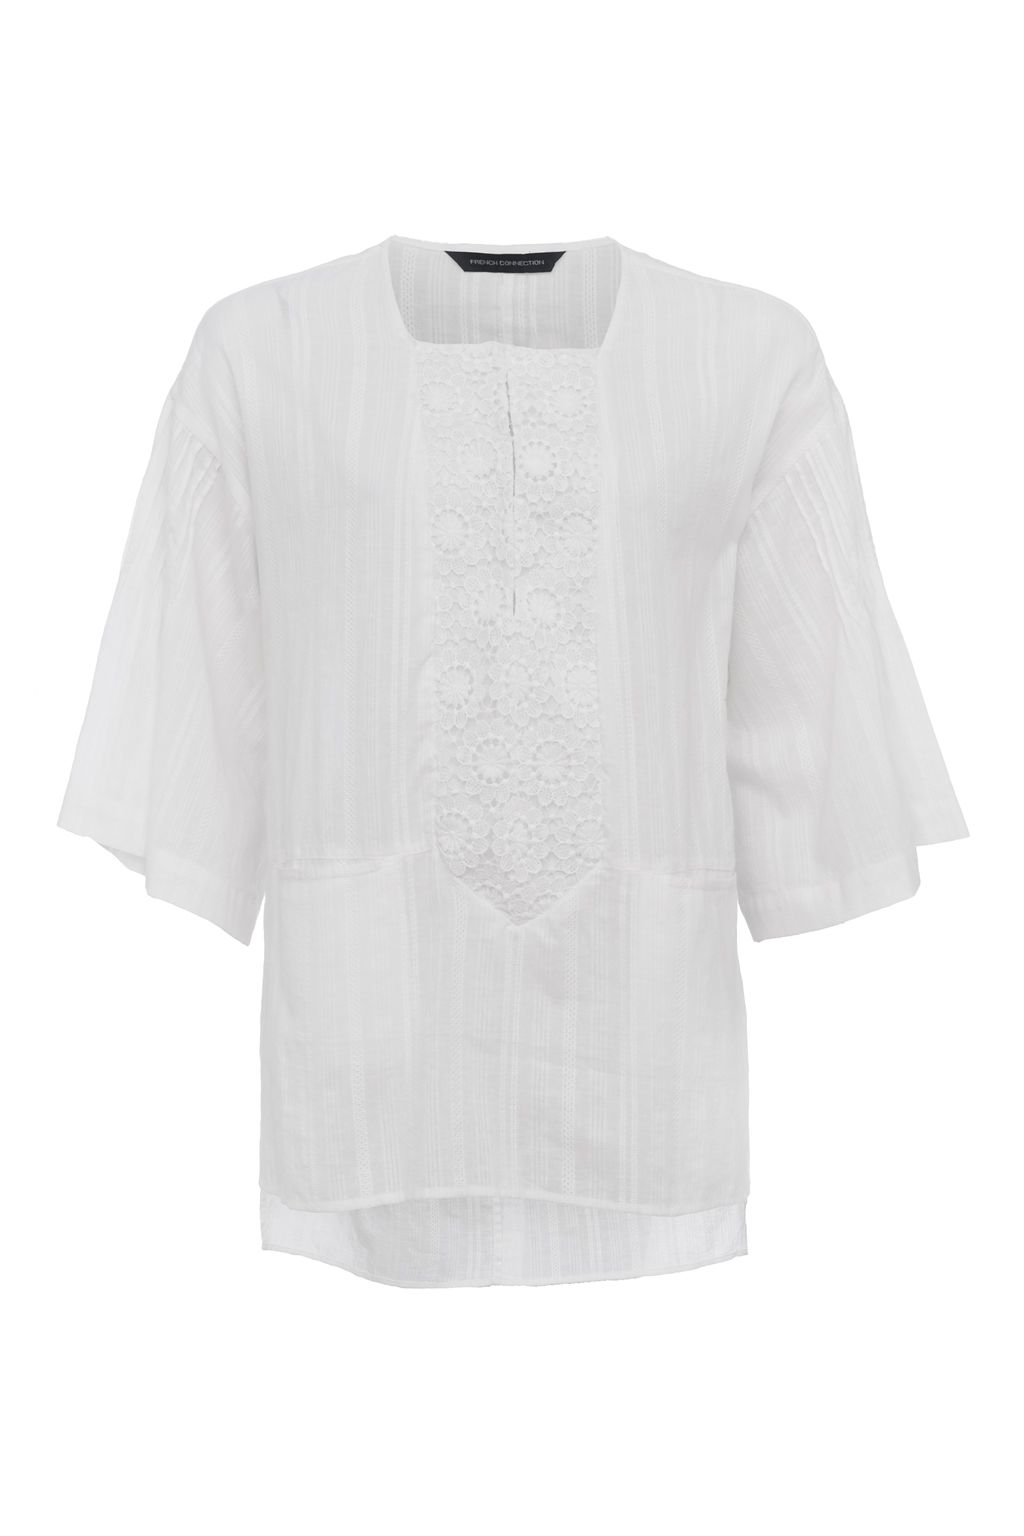 French Connection Oni Cotton Embroidered Blouse, White